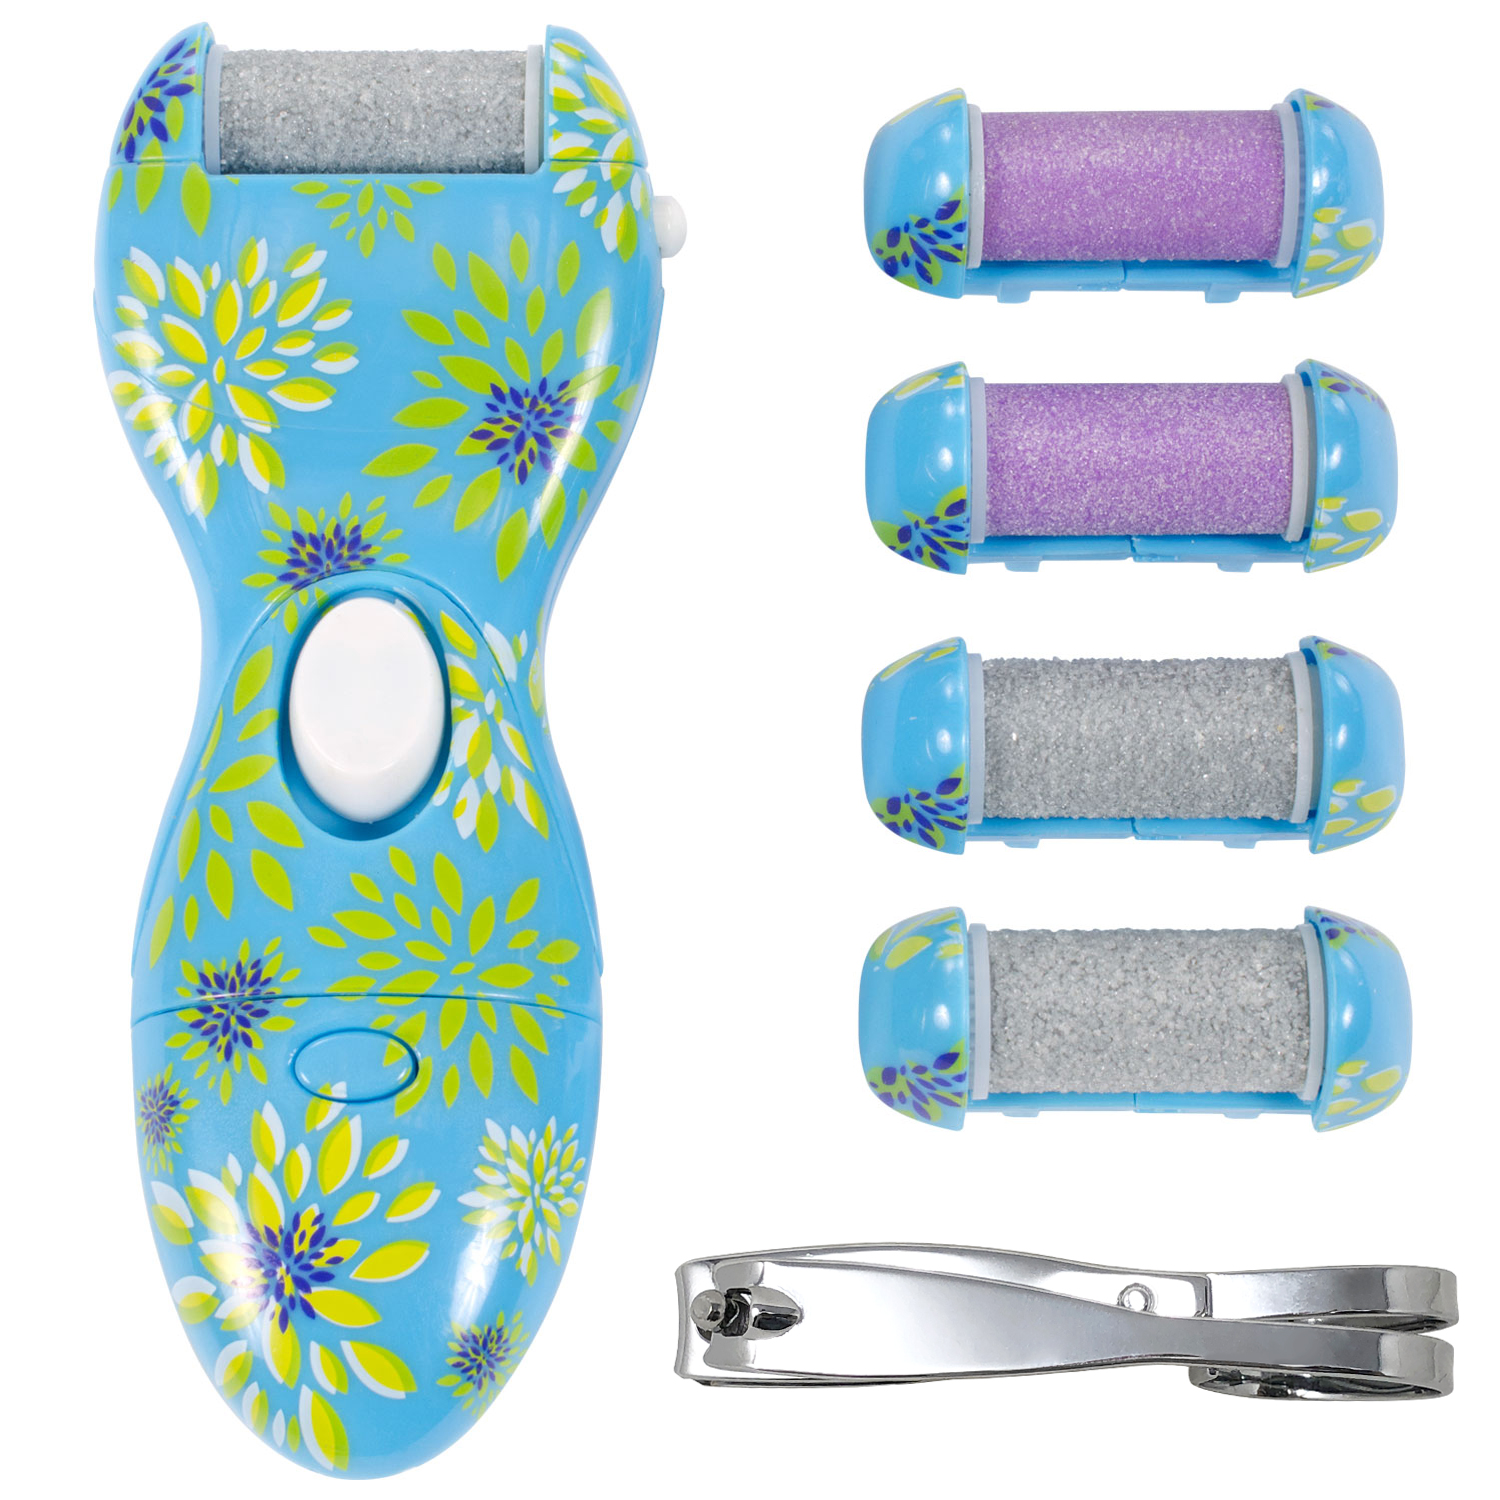 Ped Egg Power Platinum Deluxe Callus Remover with 4 Roller Heads and Nail Clipper